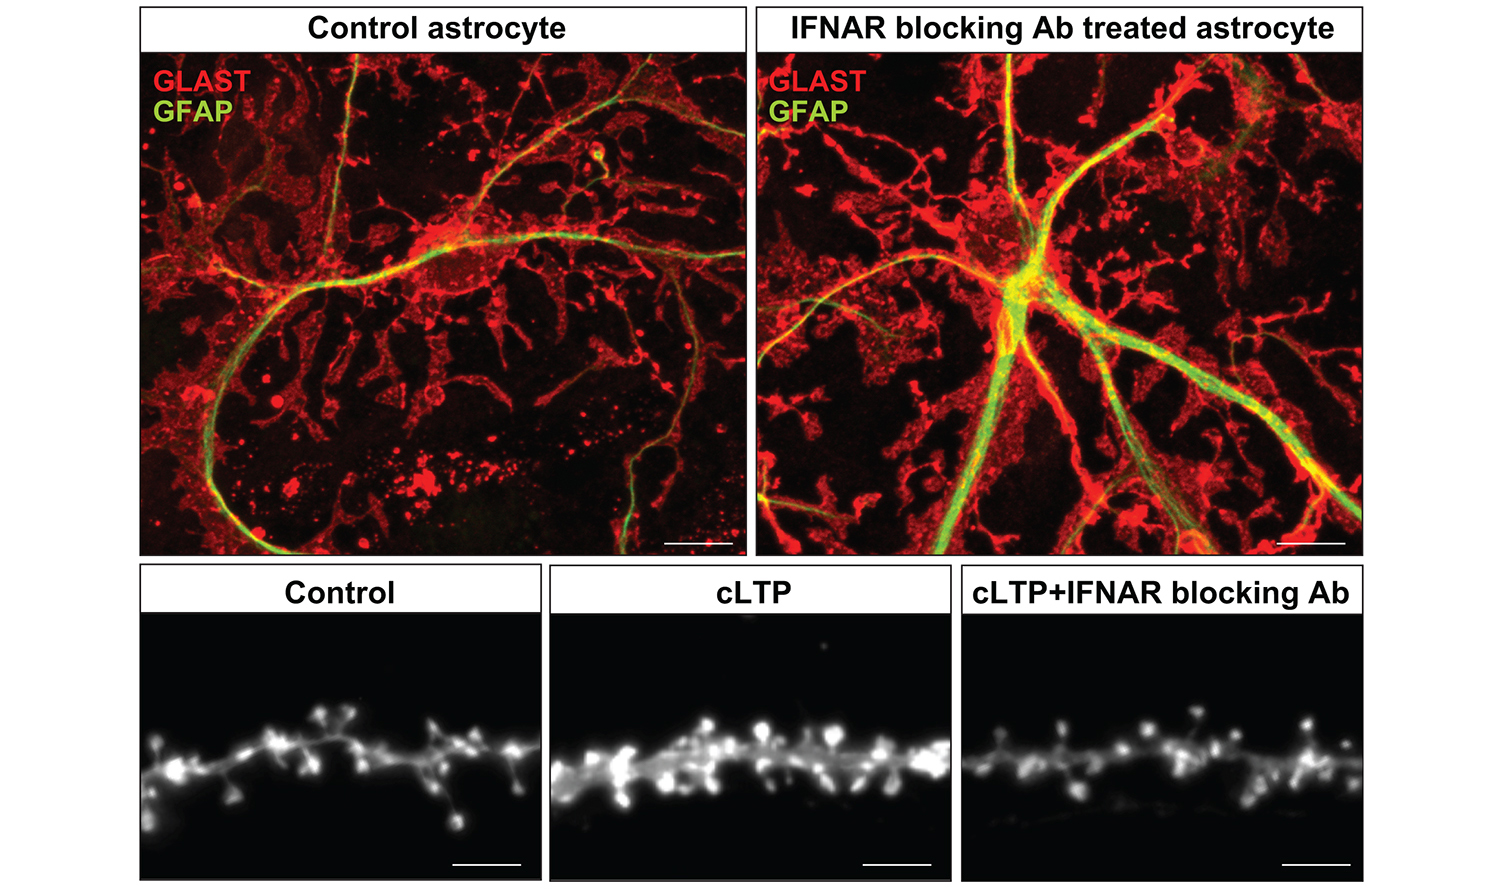 Astrocytes with (left) and without (right) interferon receptor signaling in the microscope image: If the interferon receptor signaling is missing, a significant increase of the glutamate transporter…